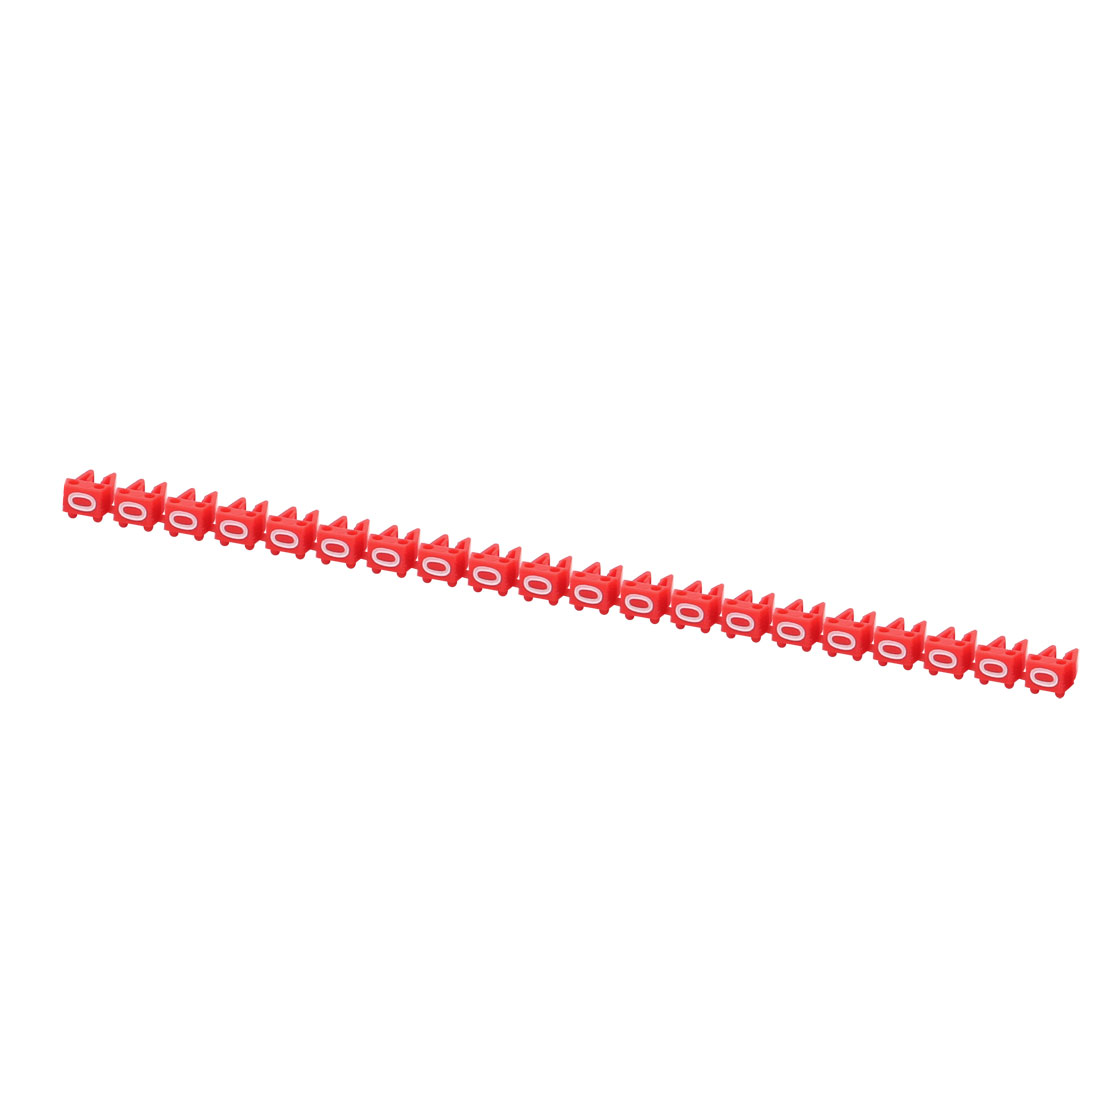 20Pcs Letters 0 Network Cable Labels Markers Red for 1.0-3.0mm Dia Cable